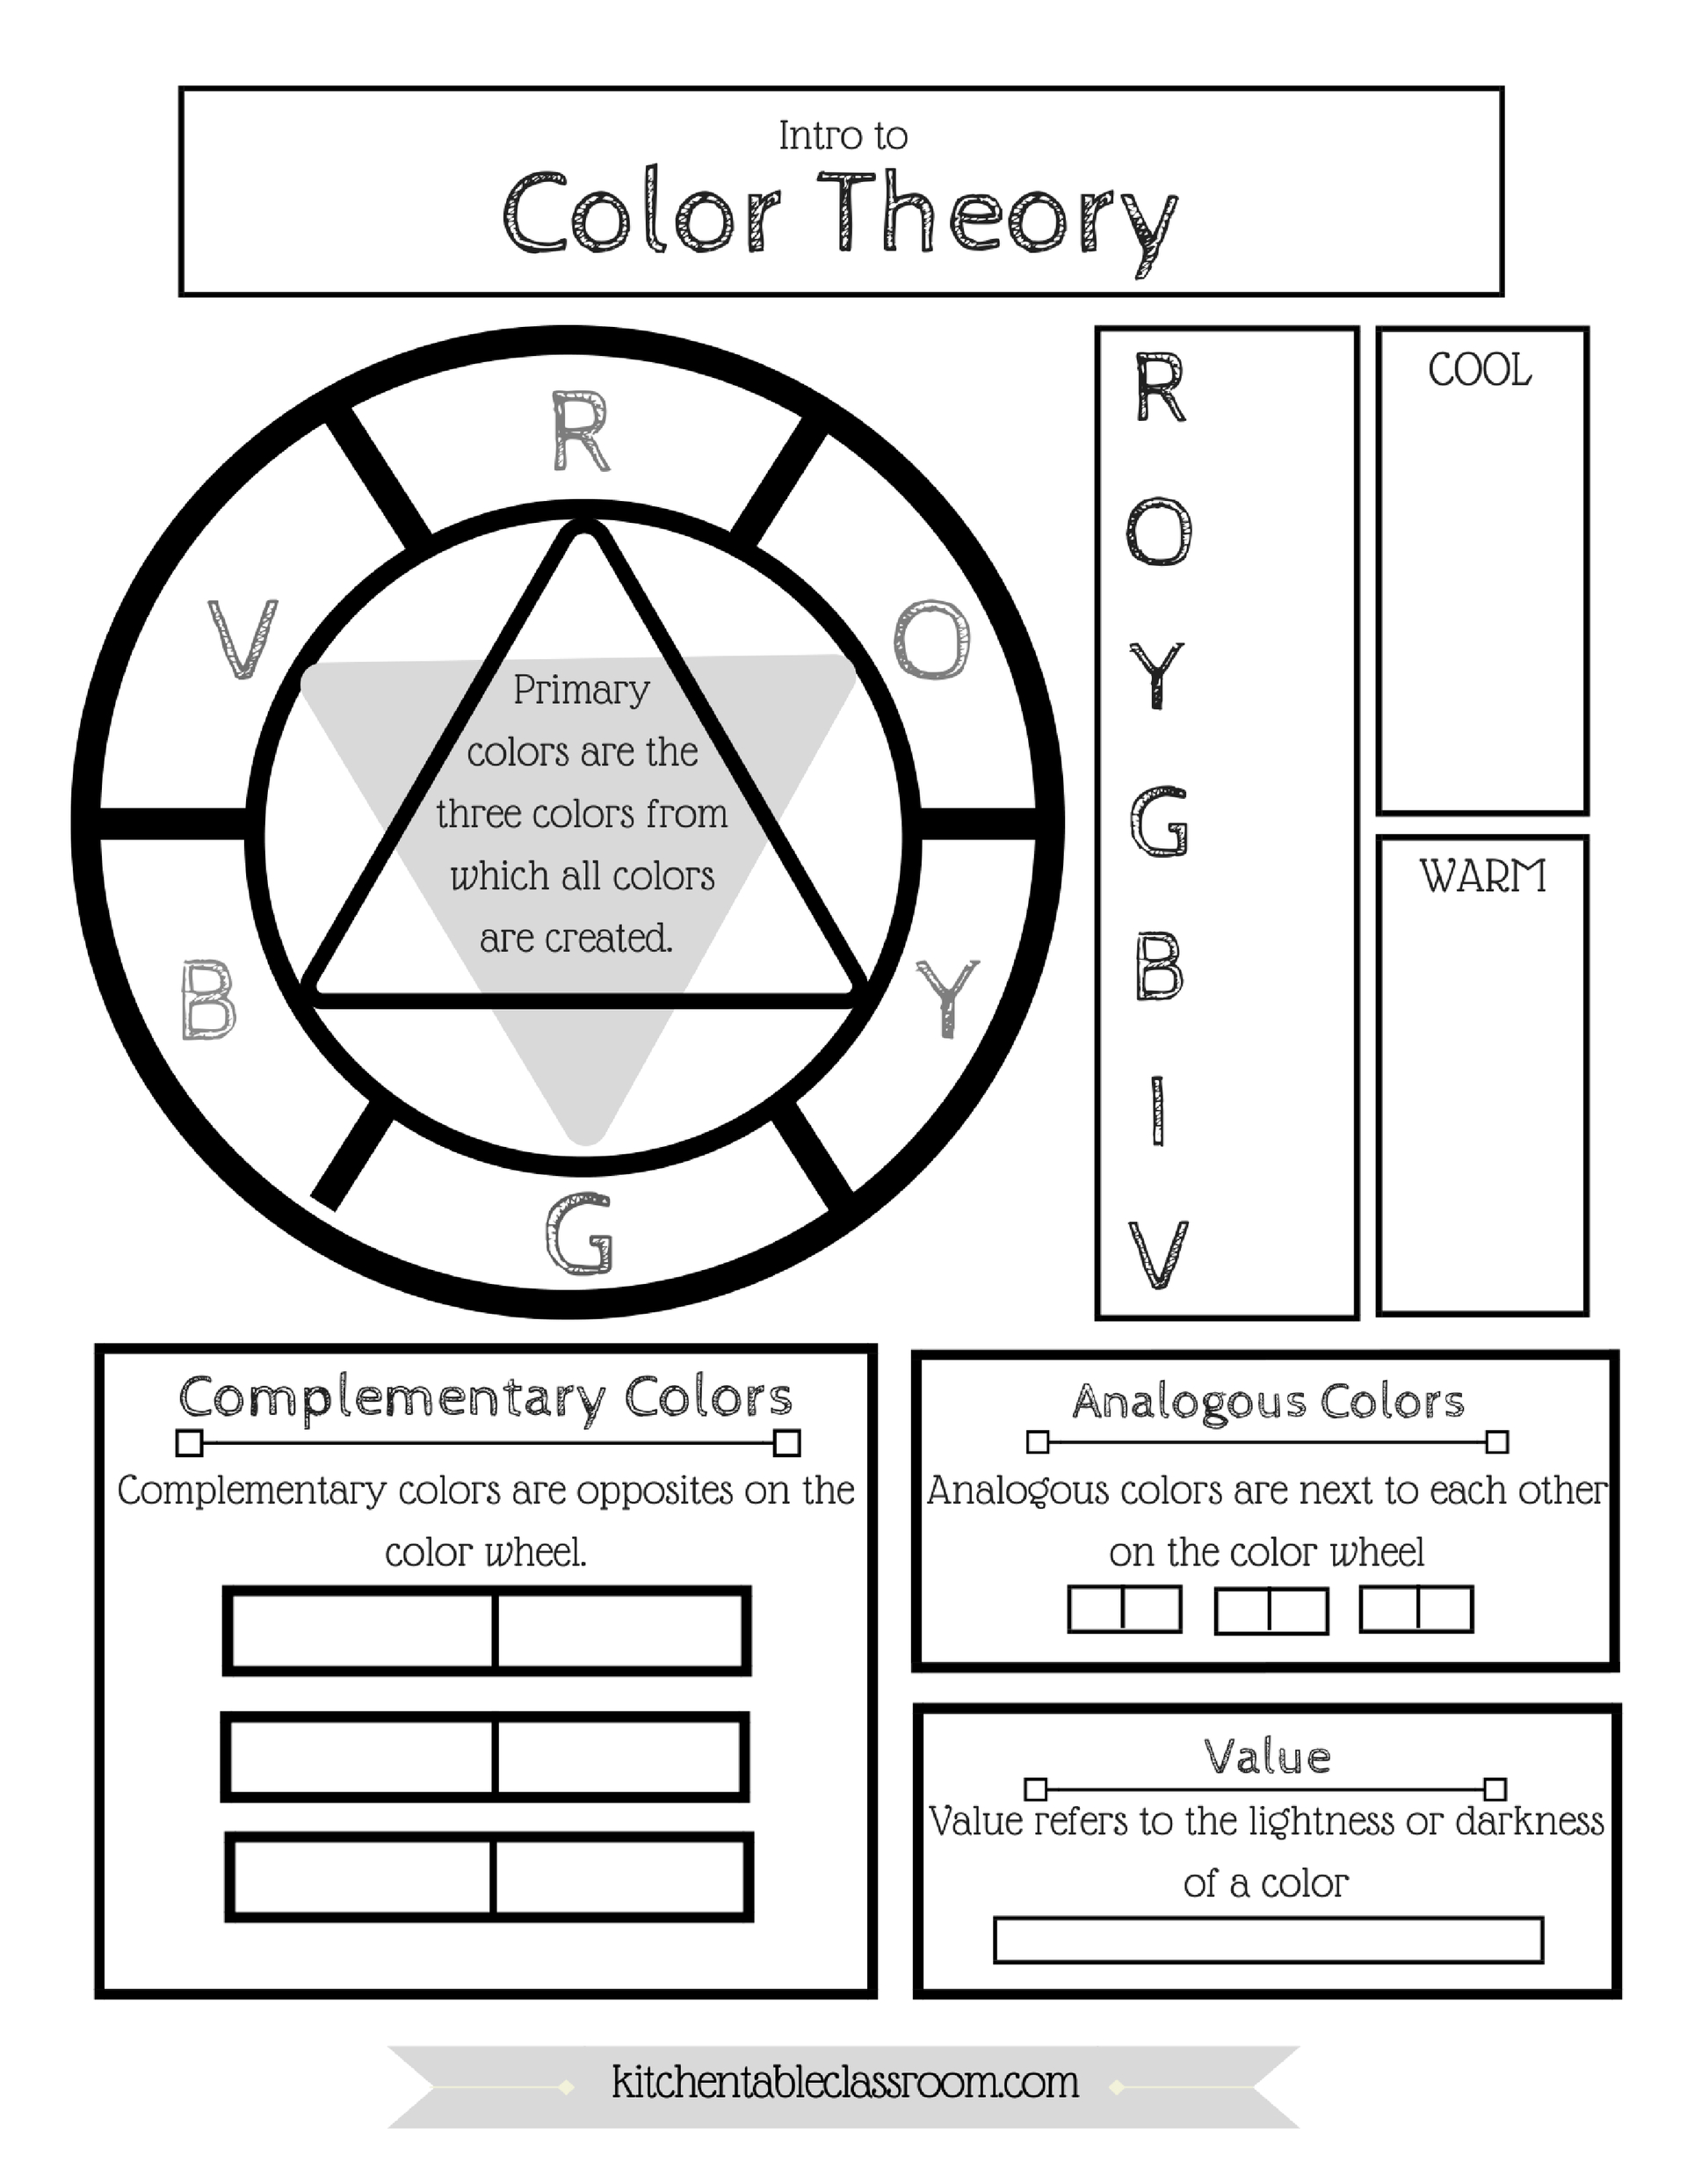 Printable Color Wheel - An Intro To Color Theory For Kids | The | Printable Color Wheel Worksheet